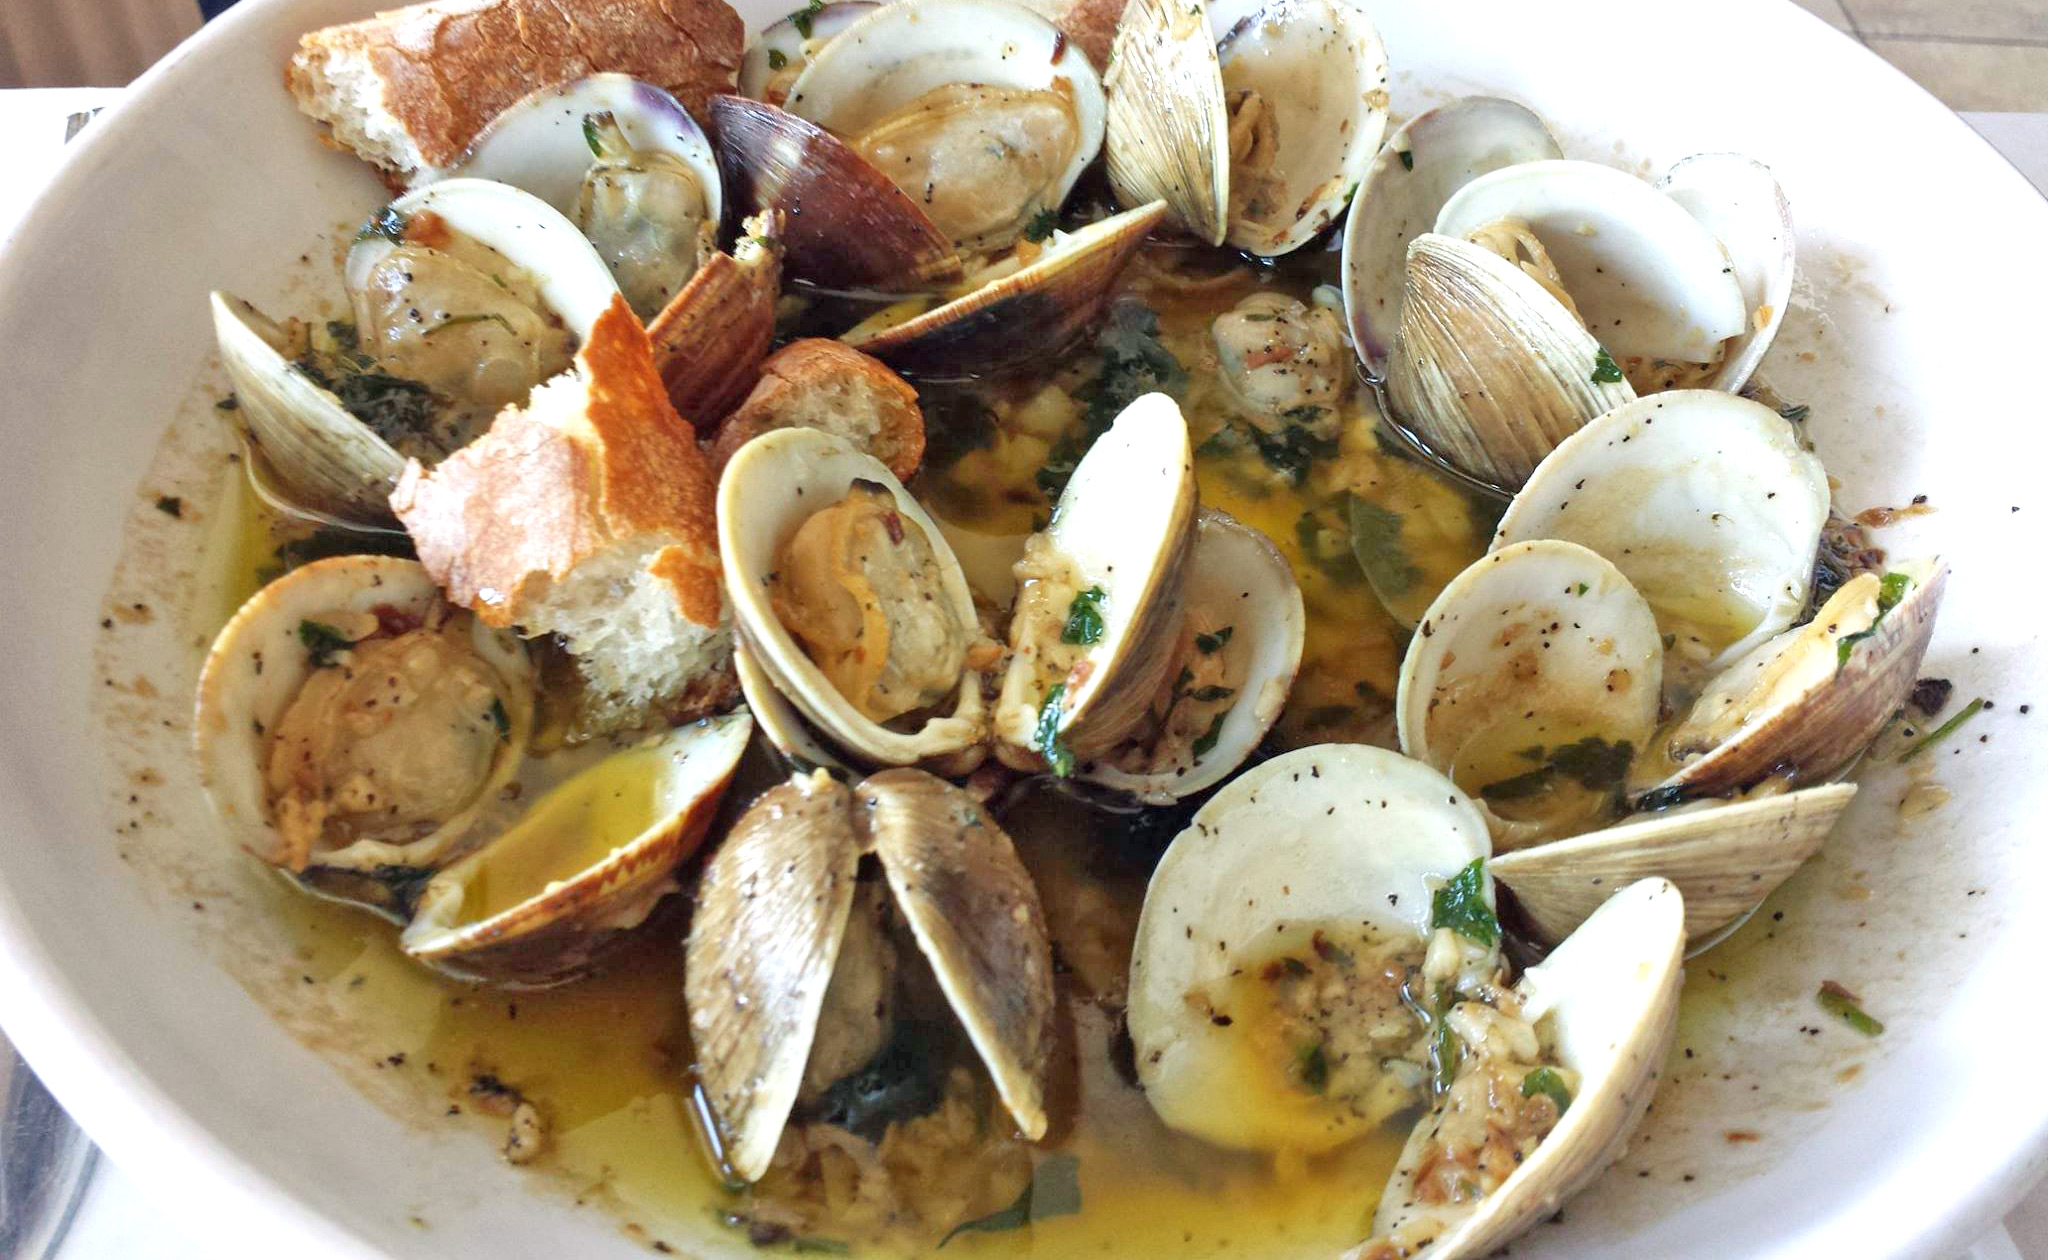 Clams with Garlic & Olive Oil